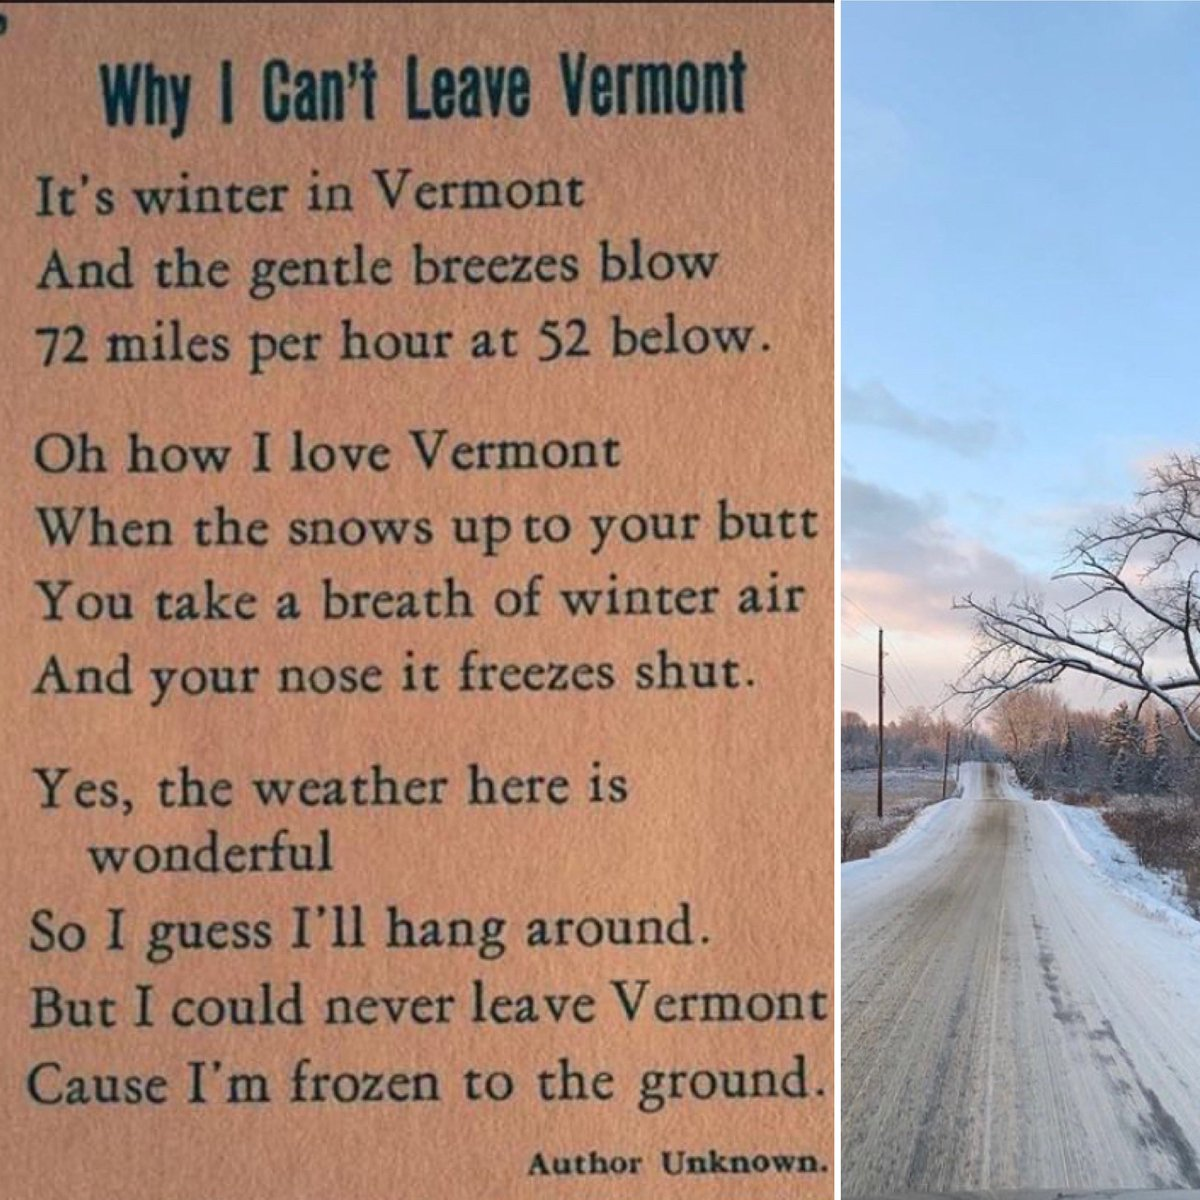 We're not going anywhere anytime soon! Hello, -8! 🥶😅 #vermont #MondayMorning #BabyItsColdOutside